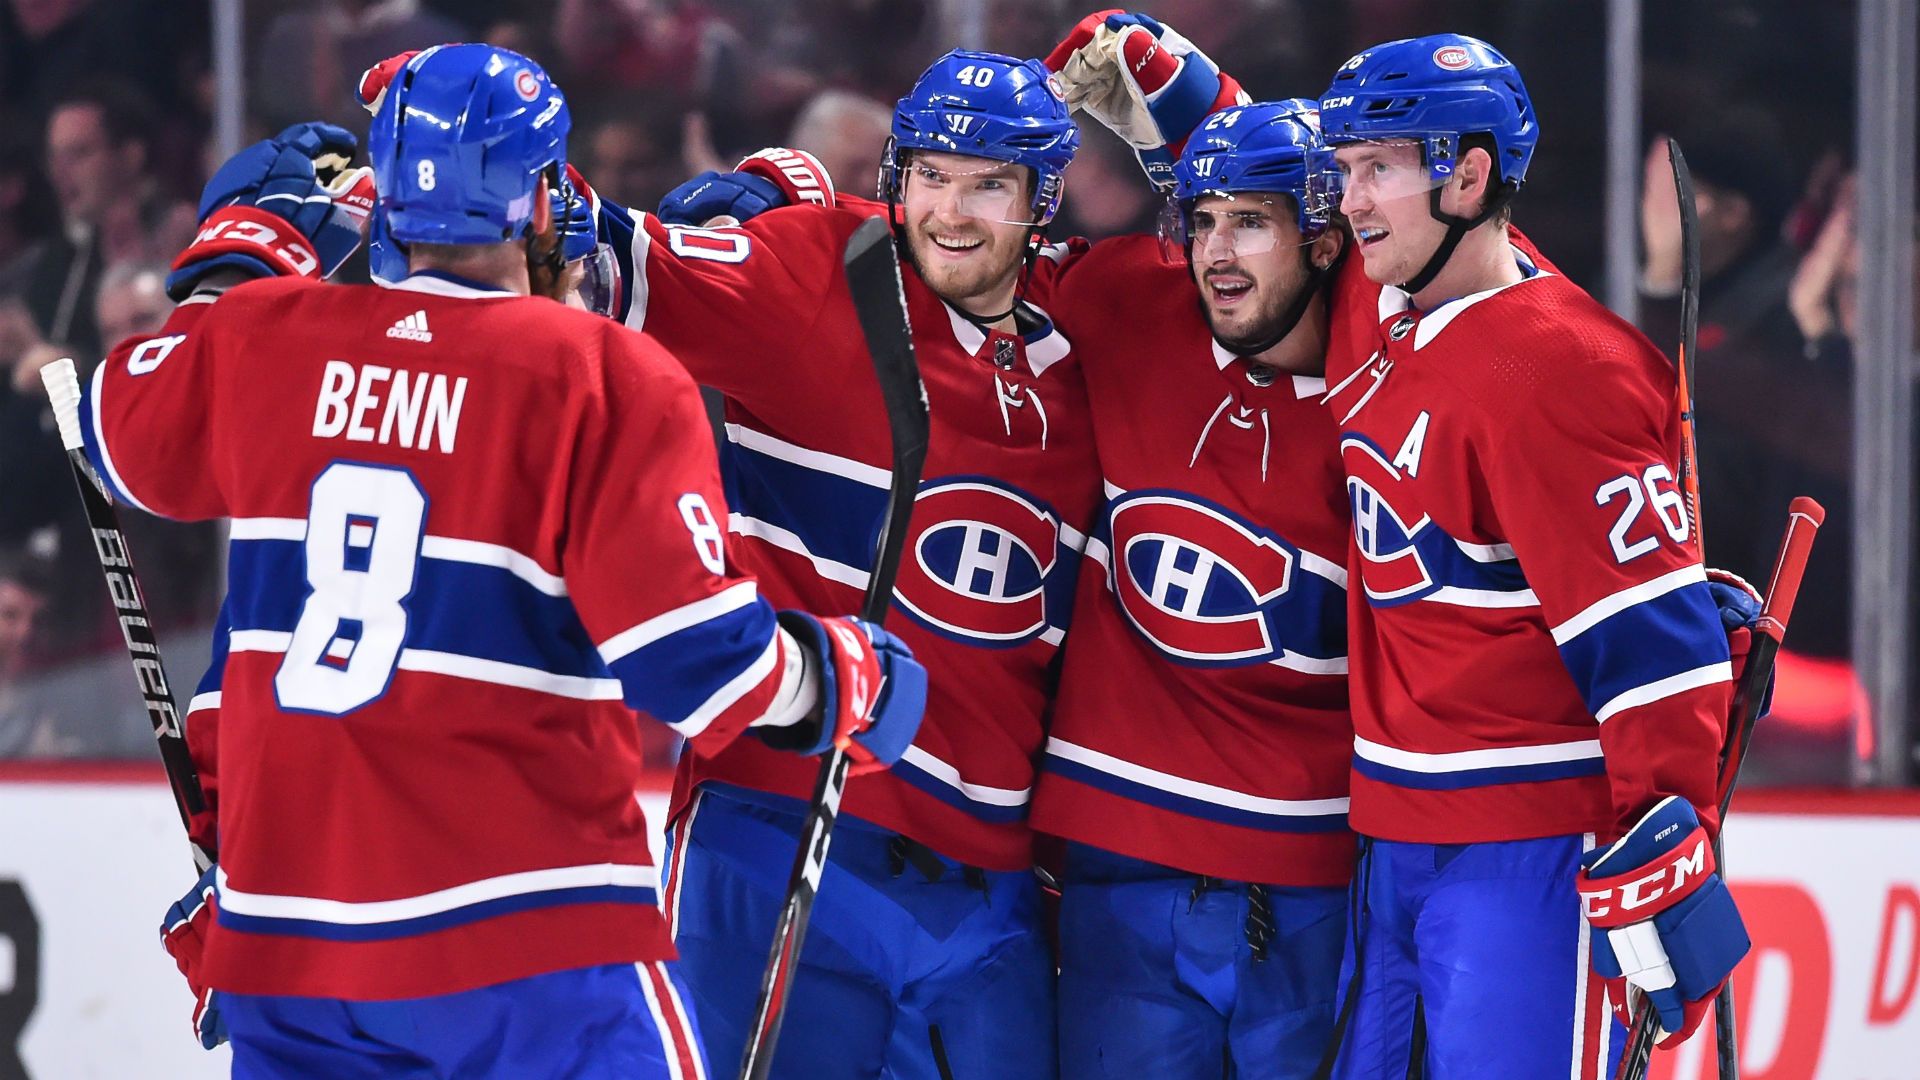 As the Canadiens 'buy in' a new culture is created in